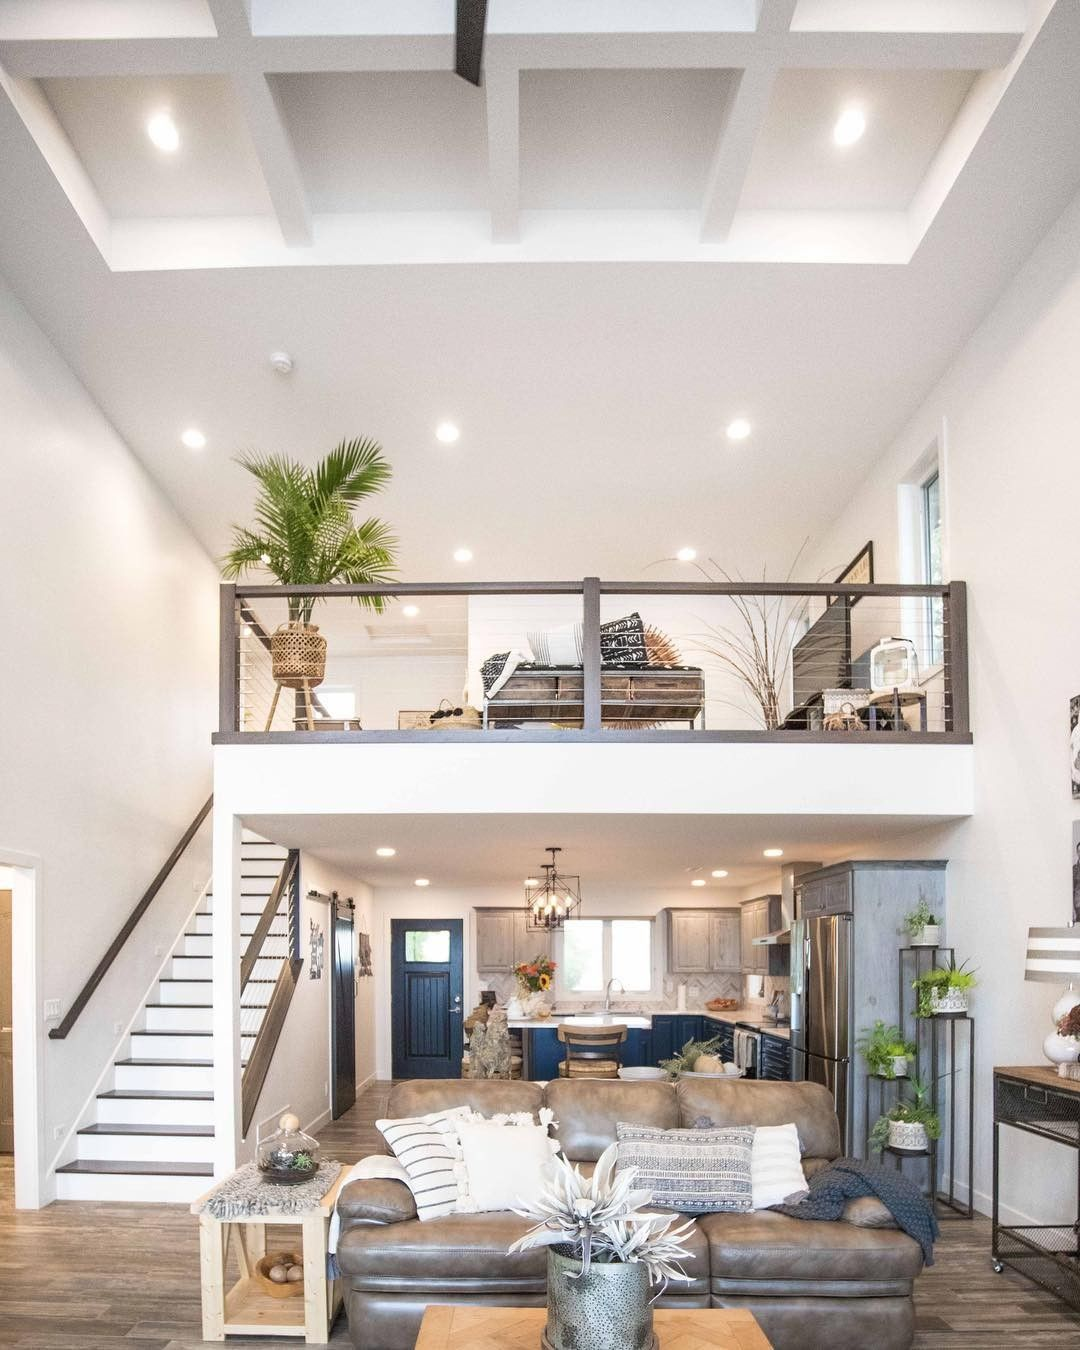 Downleahslane Posted To Instagram Give Me A Loft An Open Floor Plan And Big Windows W House Plan With Loft Modern House Plans Open Floor Open Plan Apartment